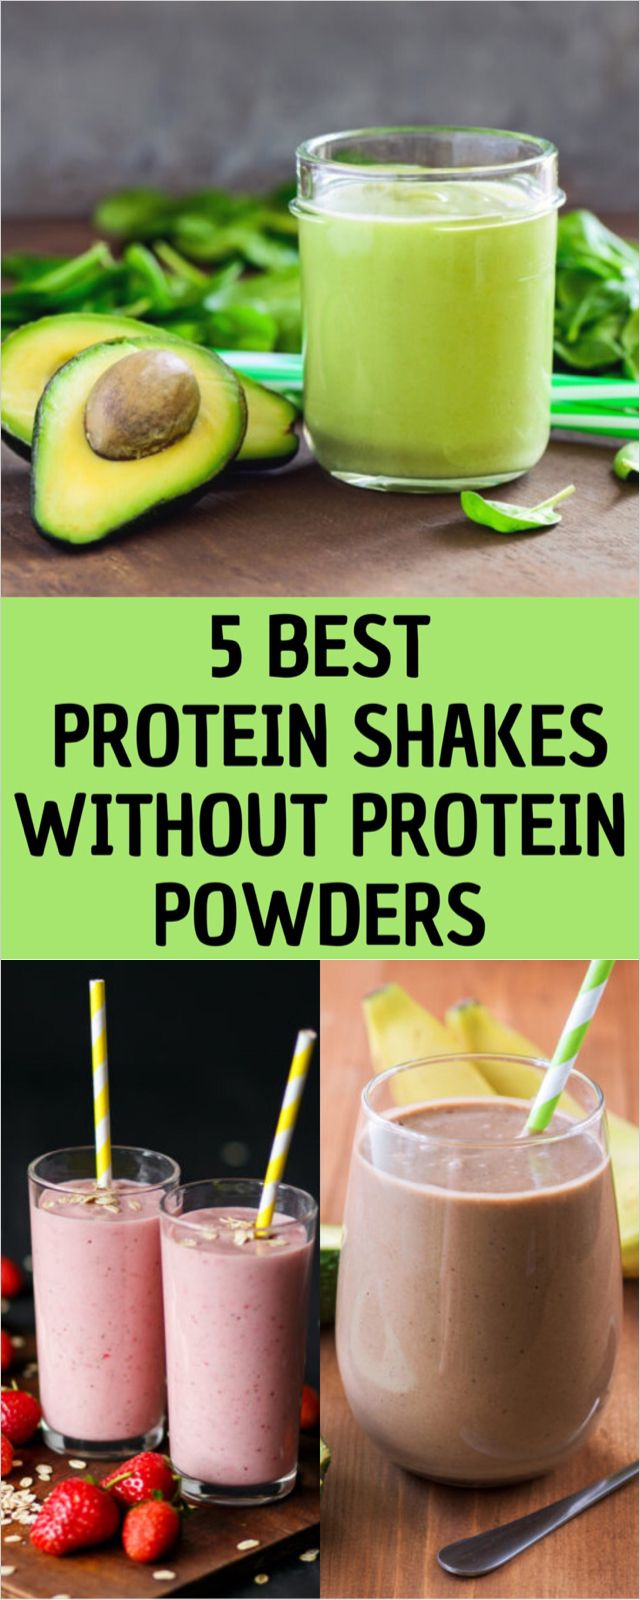 5 Best Protein Shakes without Protein Powders #proteinshakes